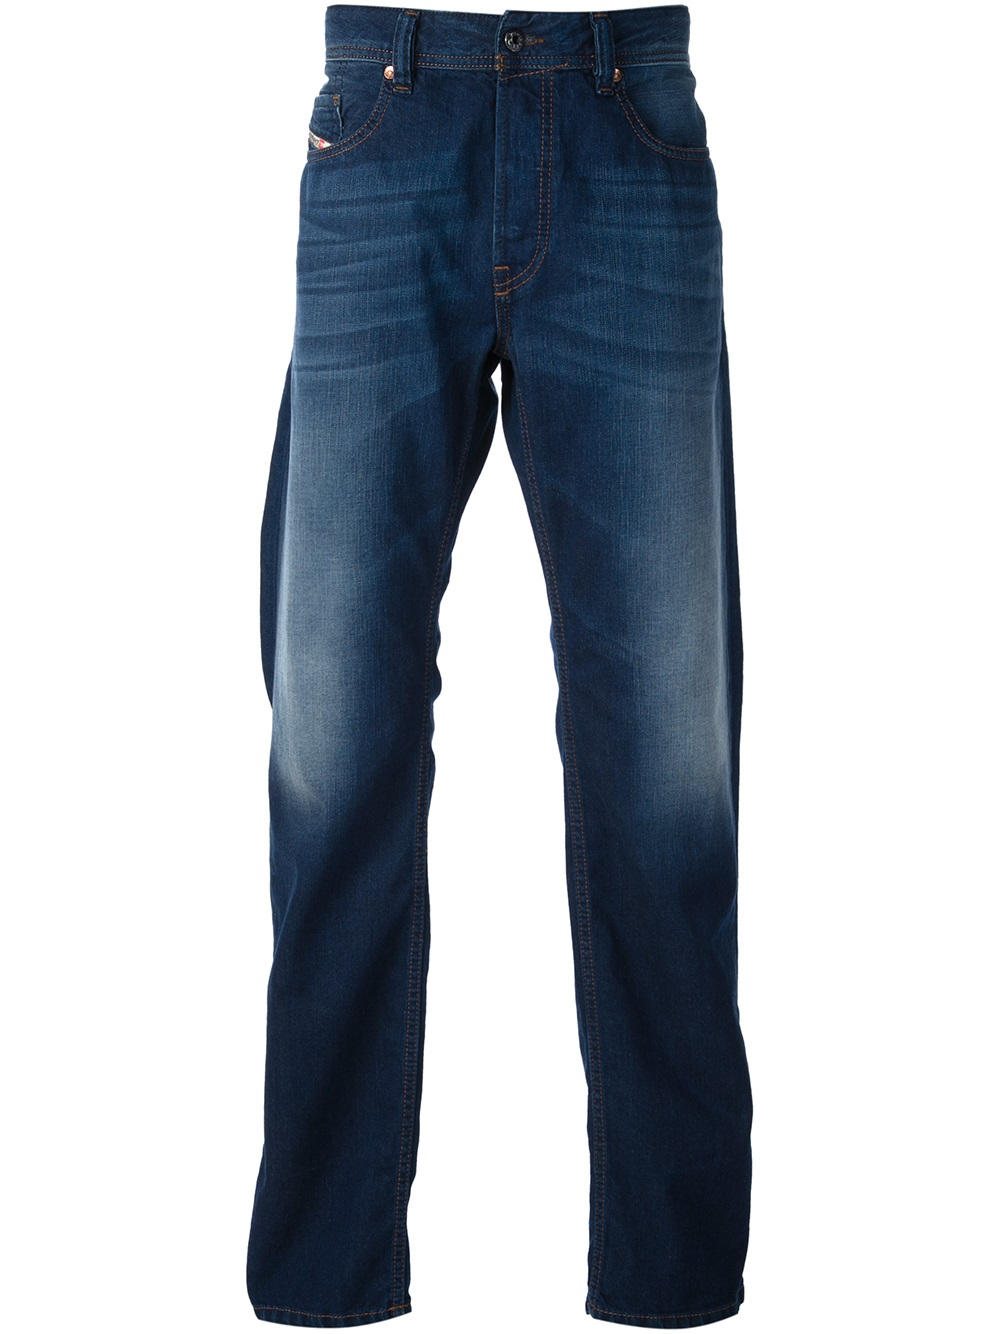 Wide-leg jean featuring heavy fading and five-pocket styling BIG JOE Mens Regular and Big&Tall Fit Jeans - Straight Leg Cut Jeans for All-Day Relaxed Comfort - Choose from Pocket Designs by BIG JOE.